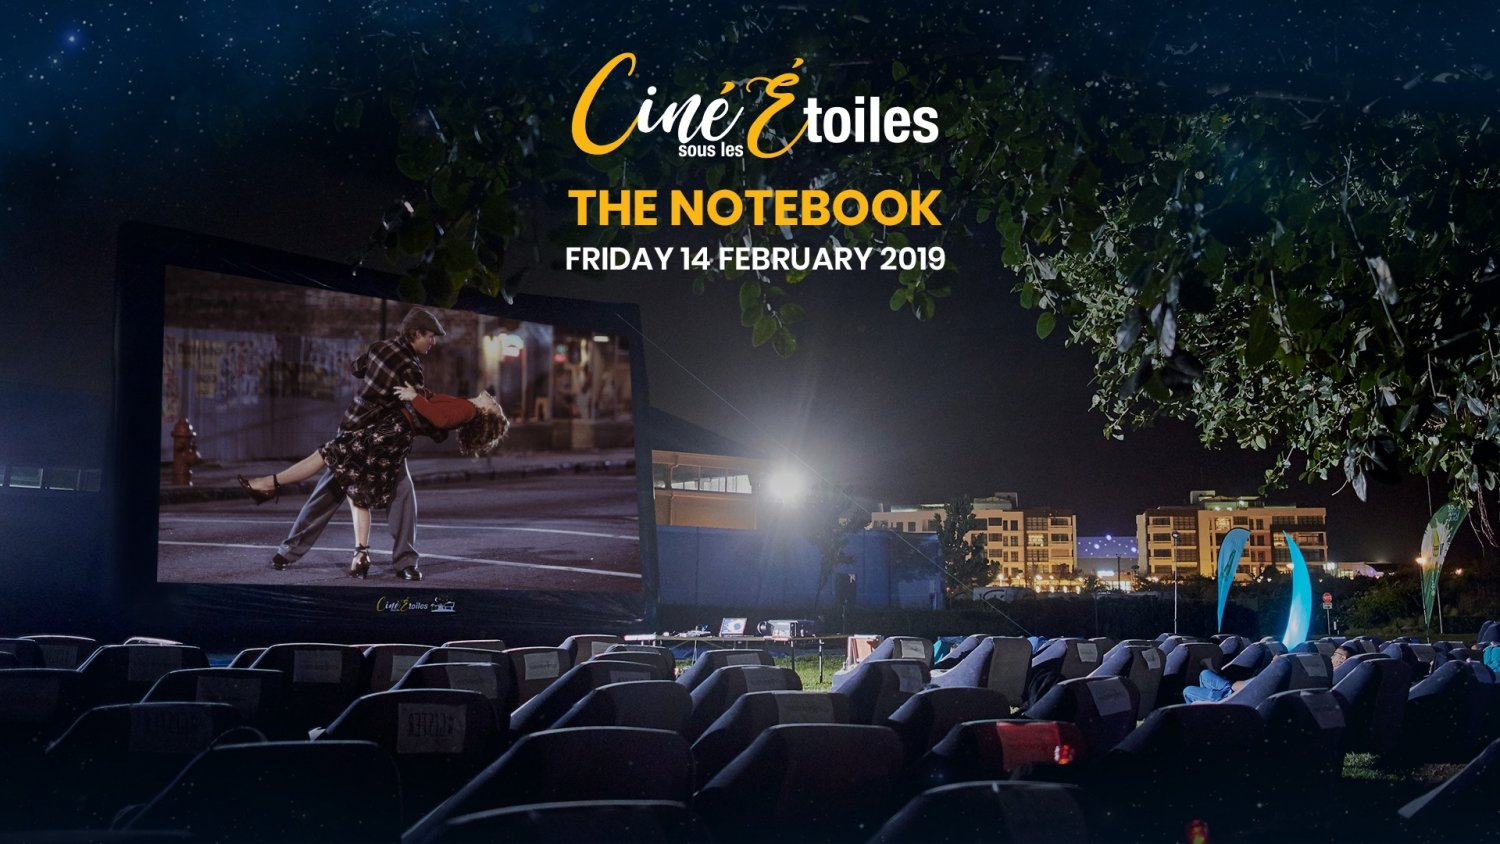 The Notebook - Ciné Sous Les Étoiles (Outdoor Cinema)